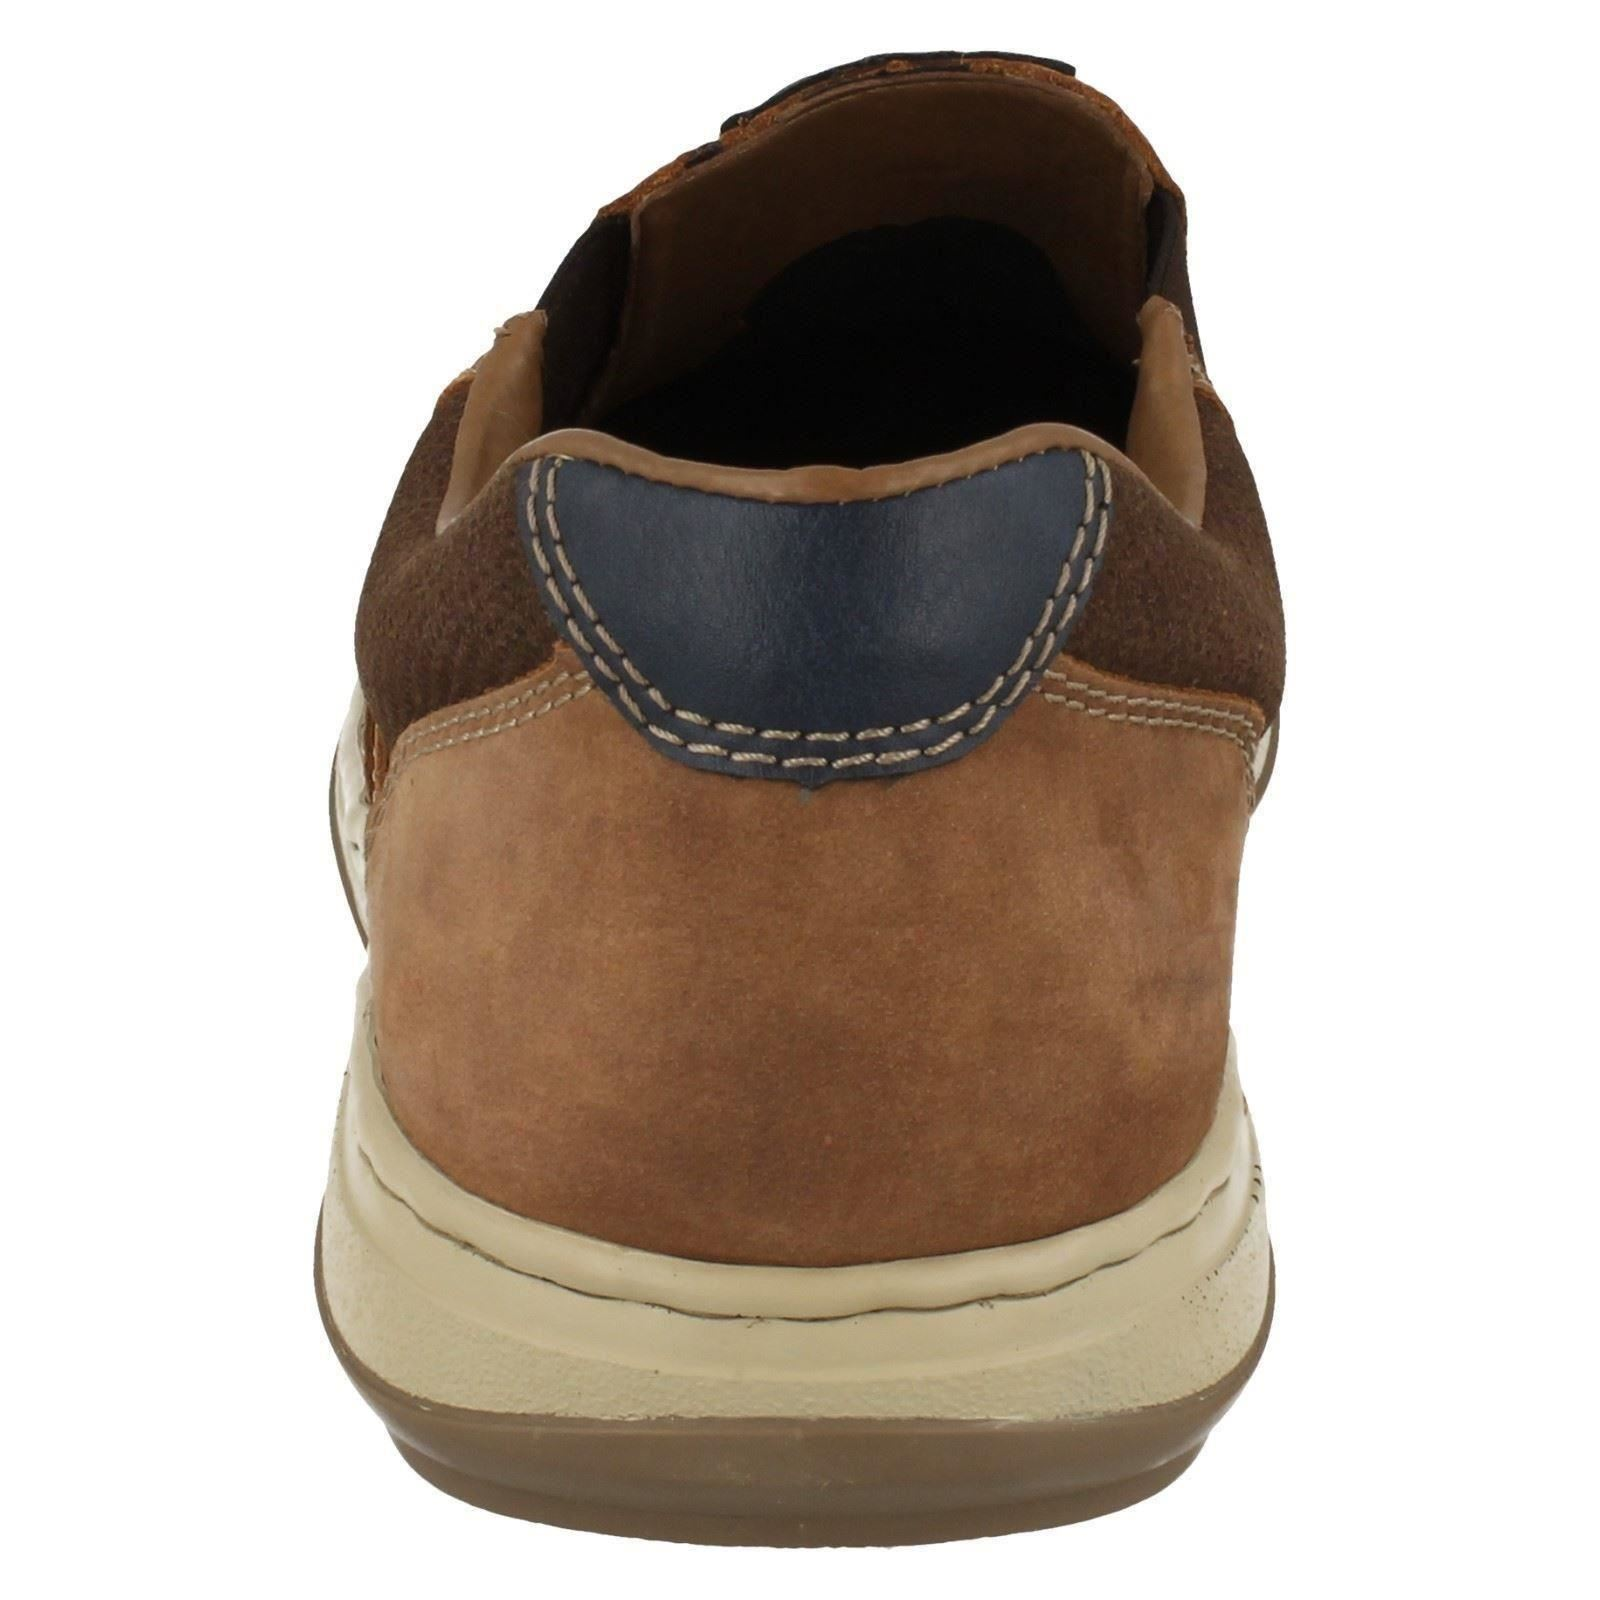 Style Moccasin Rieker brown On Slip Combi 17367 Shoes Mens Brown qSEg55